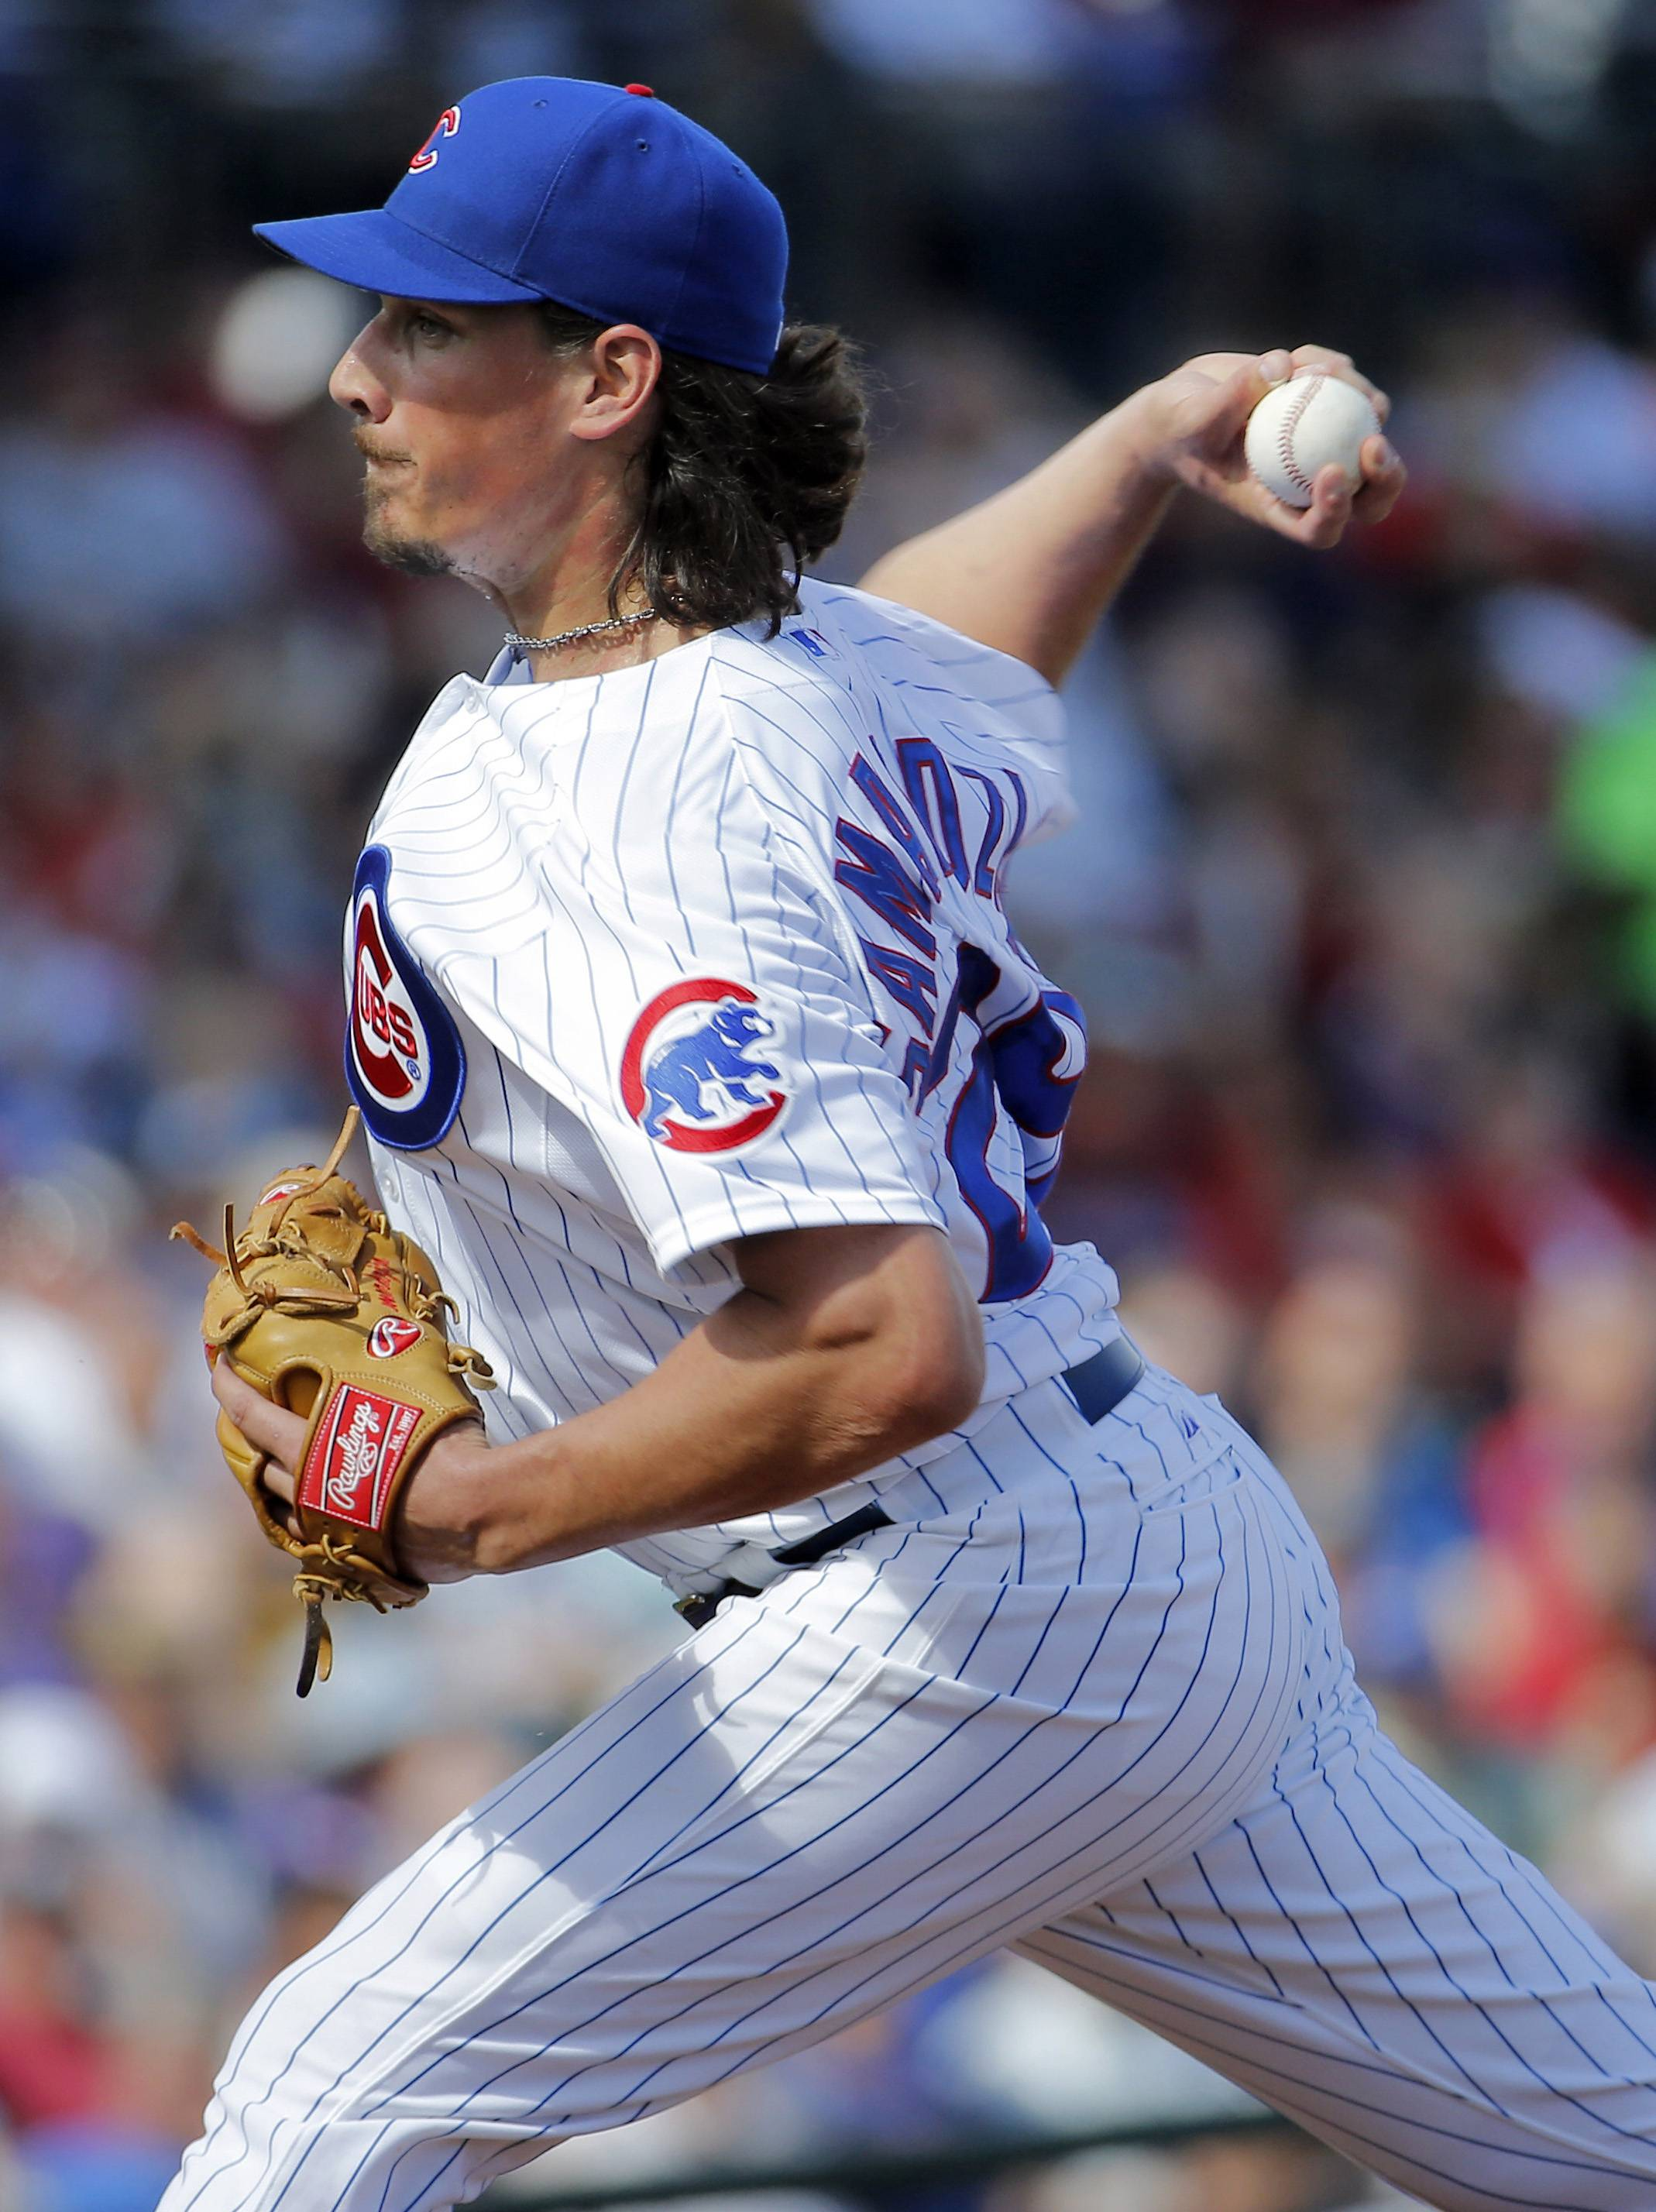 Chicago Cubs pitcher Jeff Samardzija pitched two shutout innings during the Cubs' opener in their new Arizona stadium Thursday, but they still lost to the Diamondbacks 5-2.